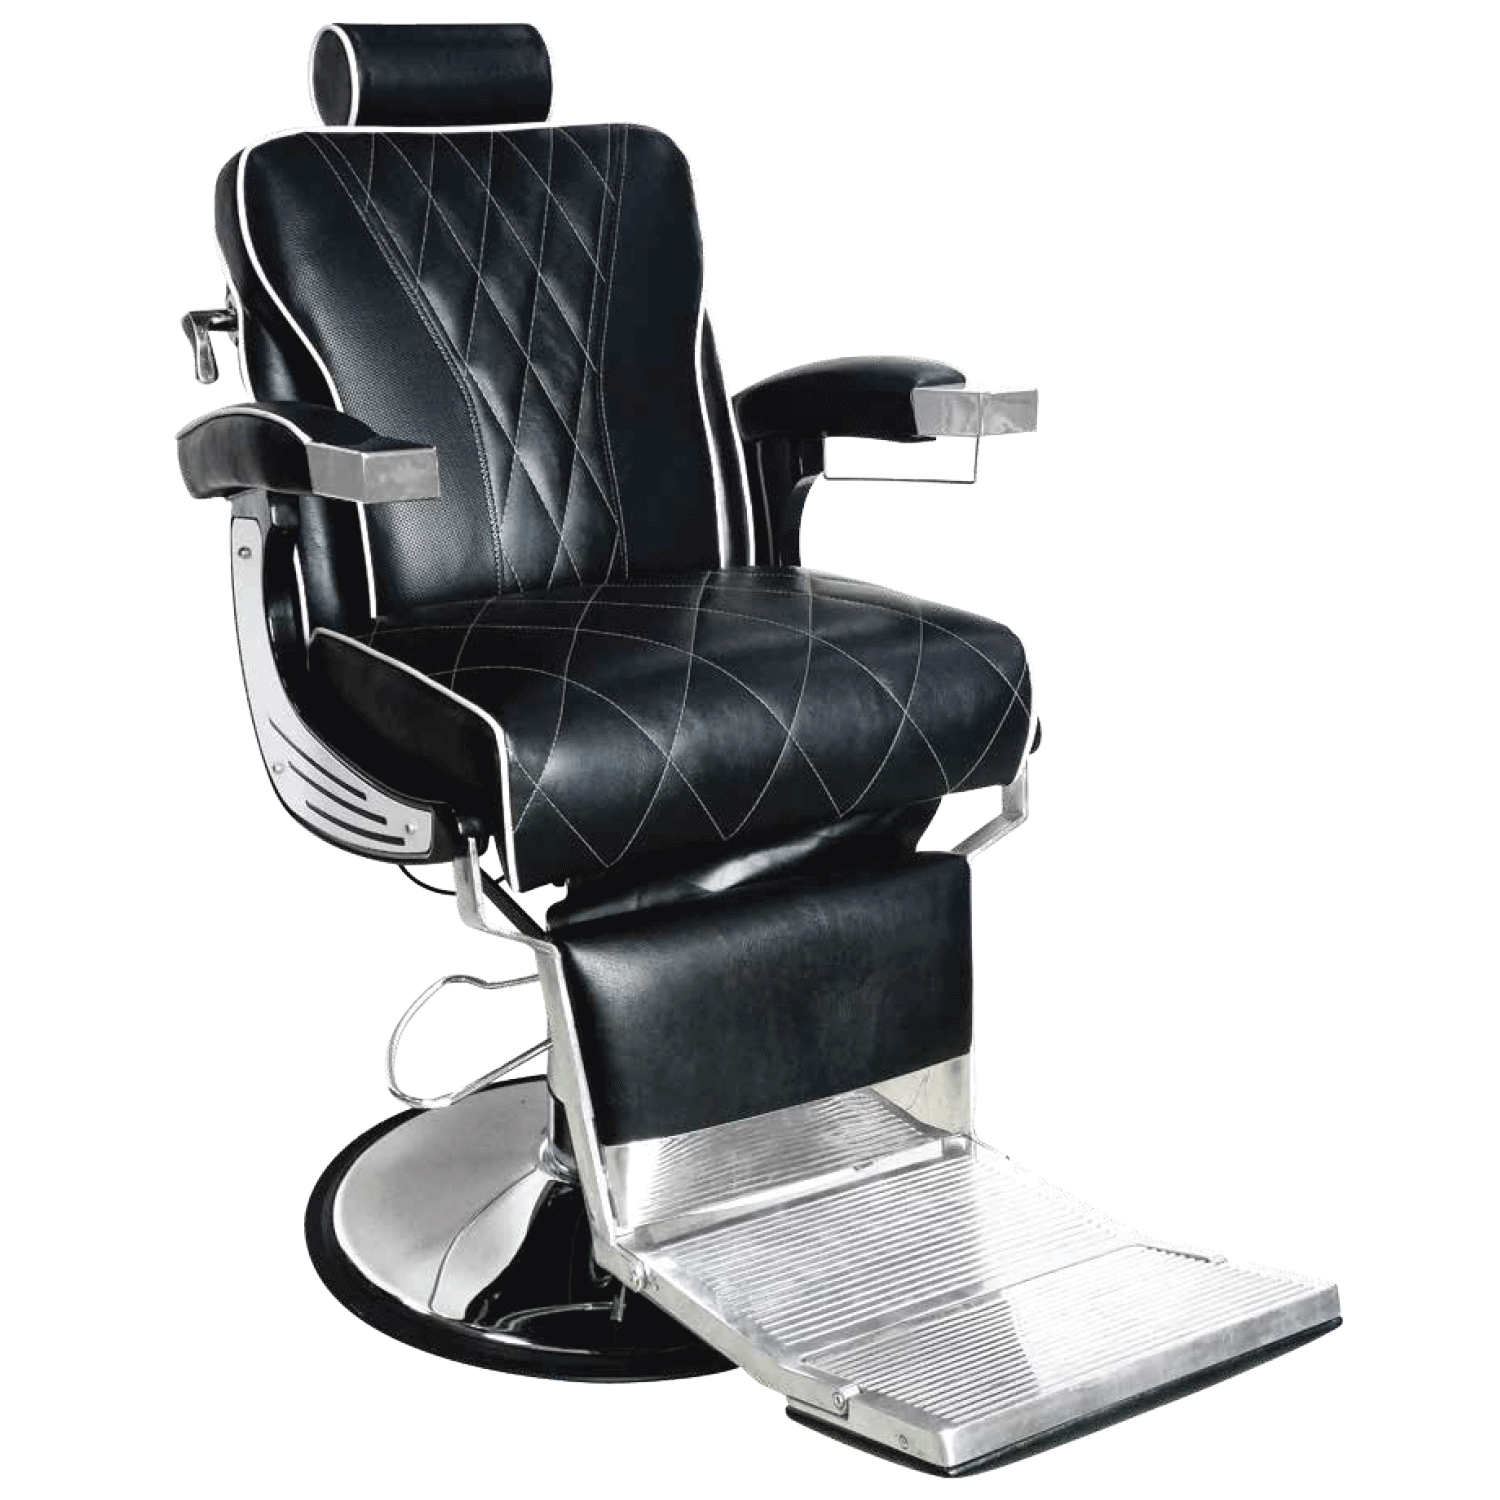 Barber Chairs Barburys Black Barber Chair